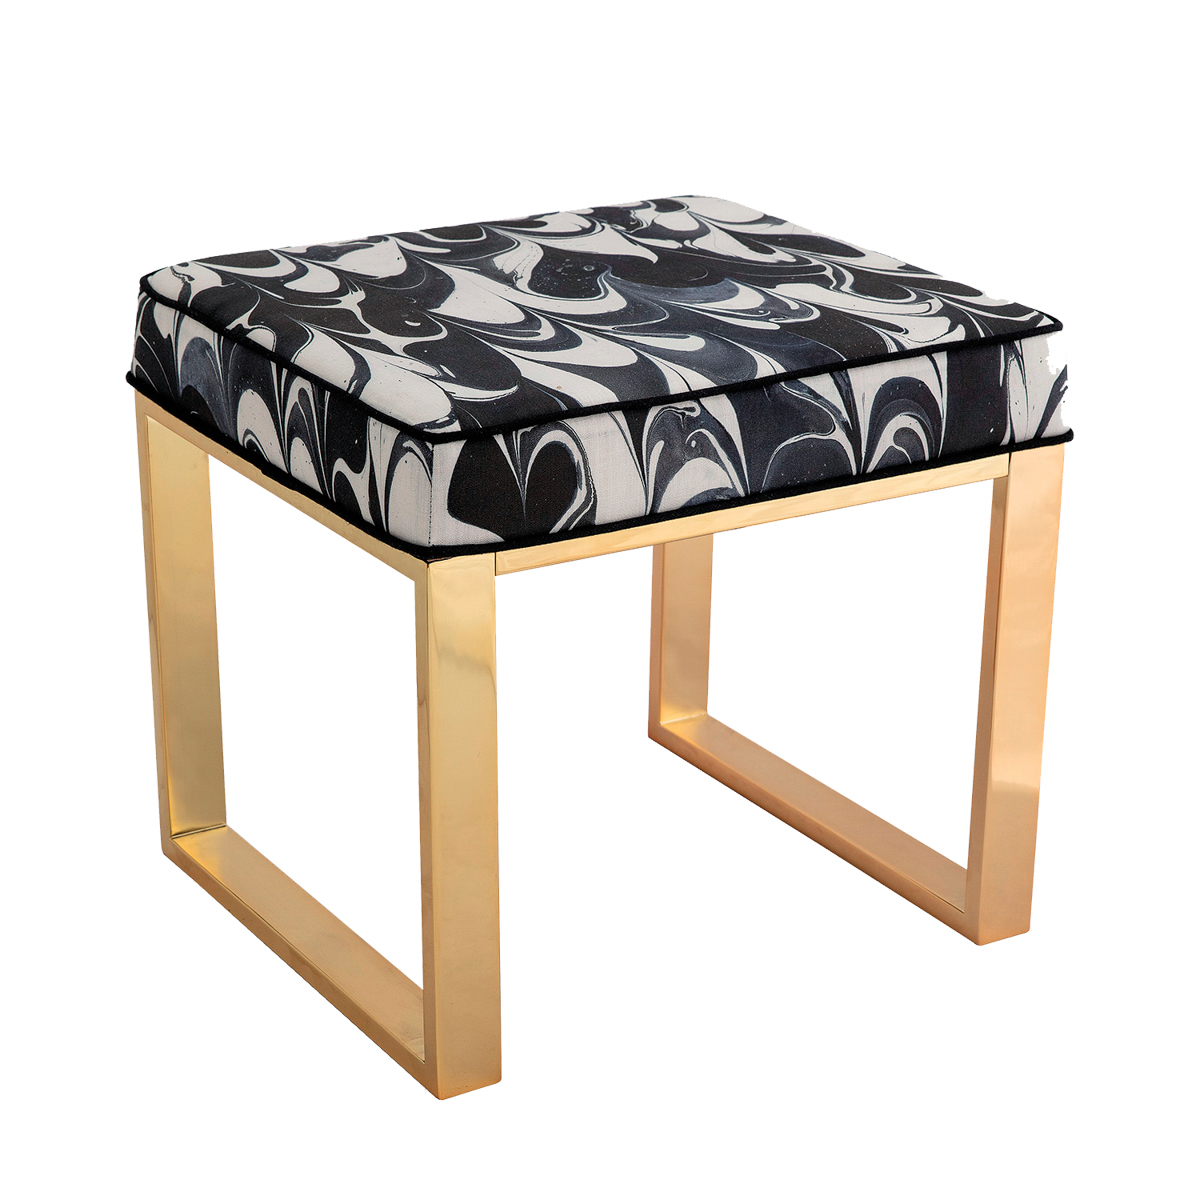 stool with black and white marbling fabric